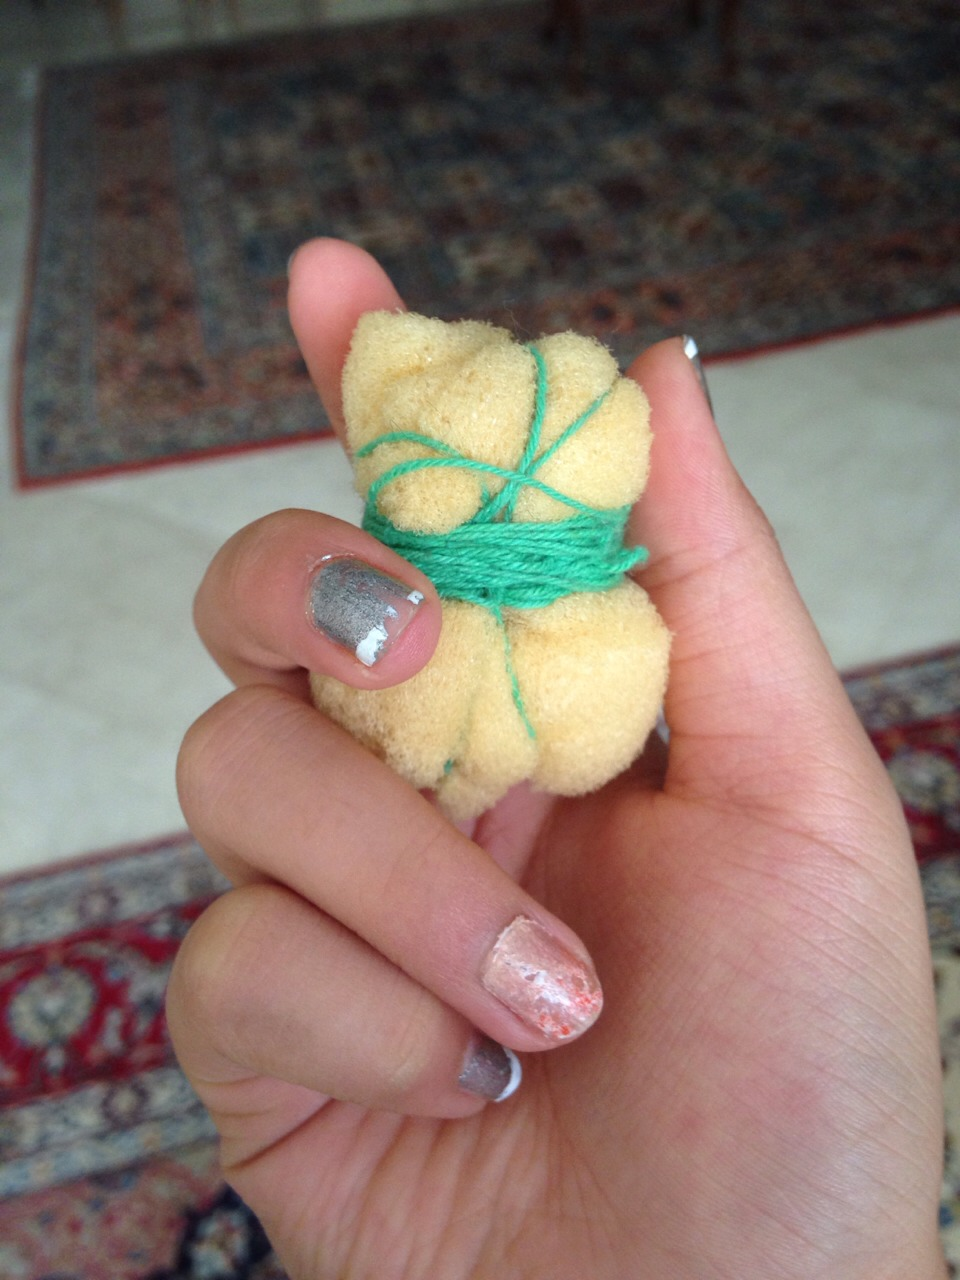 Next is the sponge warn ball. Just take a small sponge and wrap it in yarn/string.